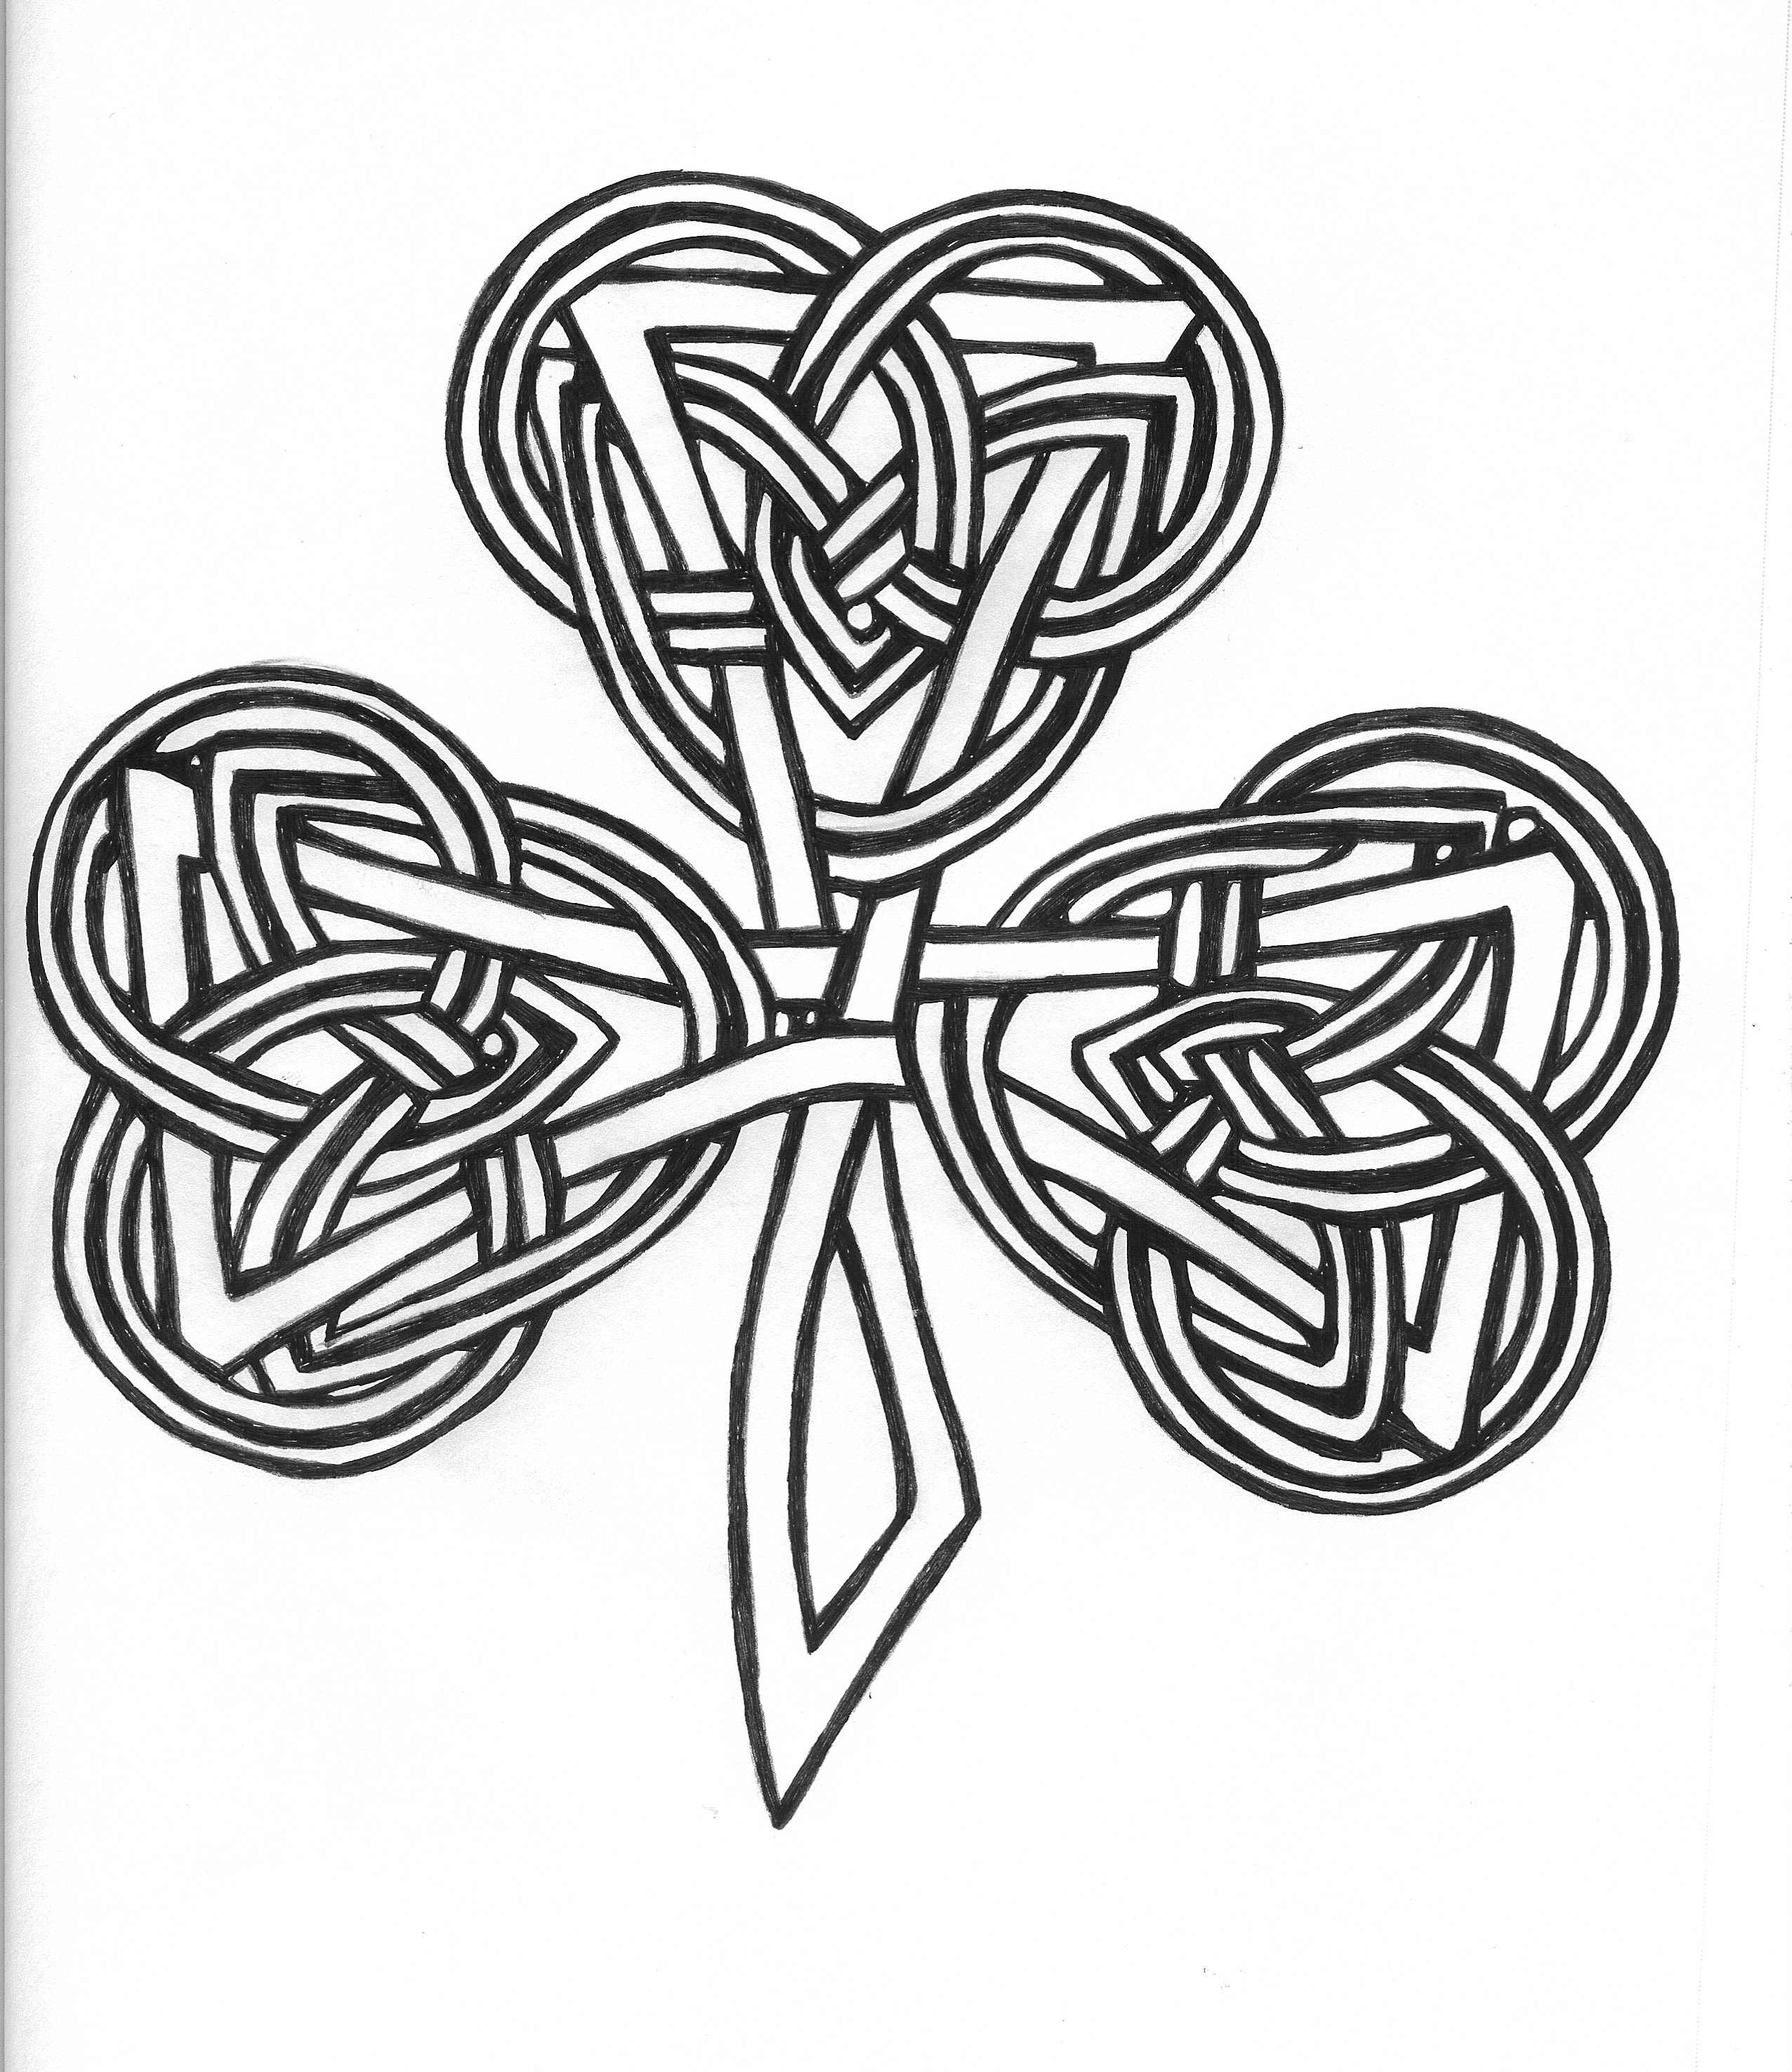 Coloring book pages shamrock - Celtic Knot Shamrock I Will Have This Tattoo On My Foot This Year